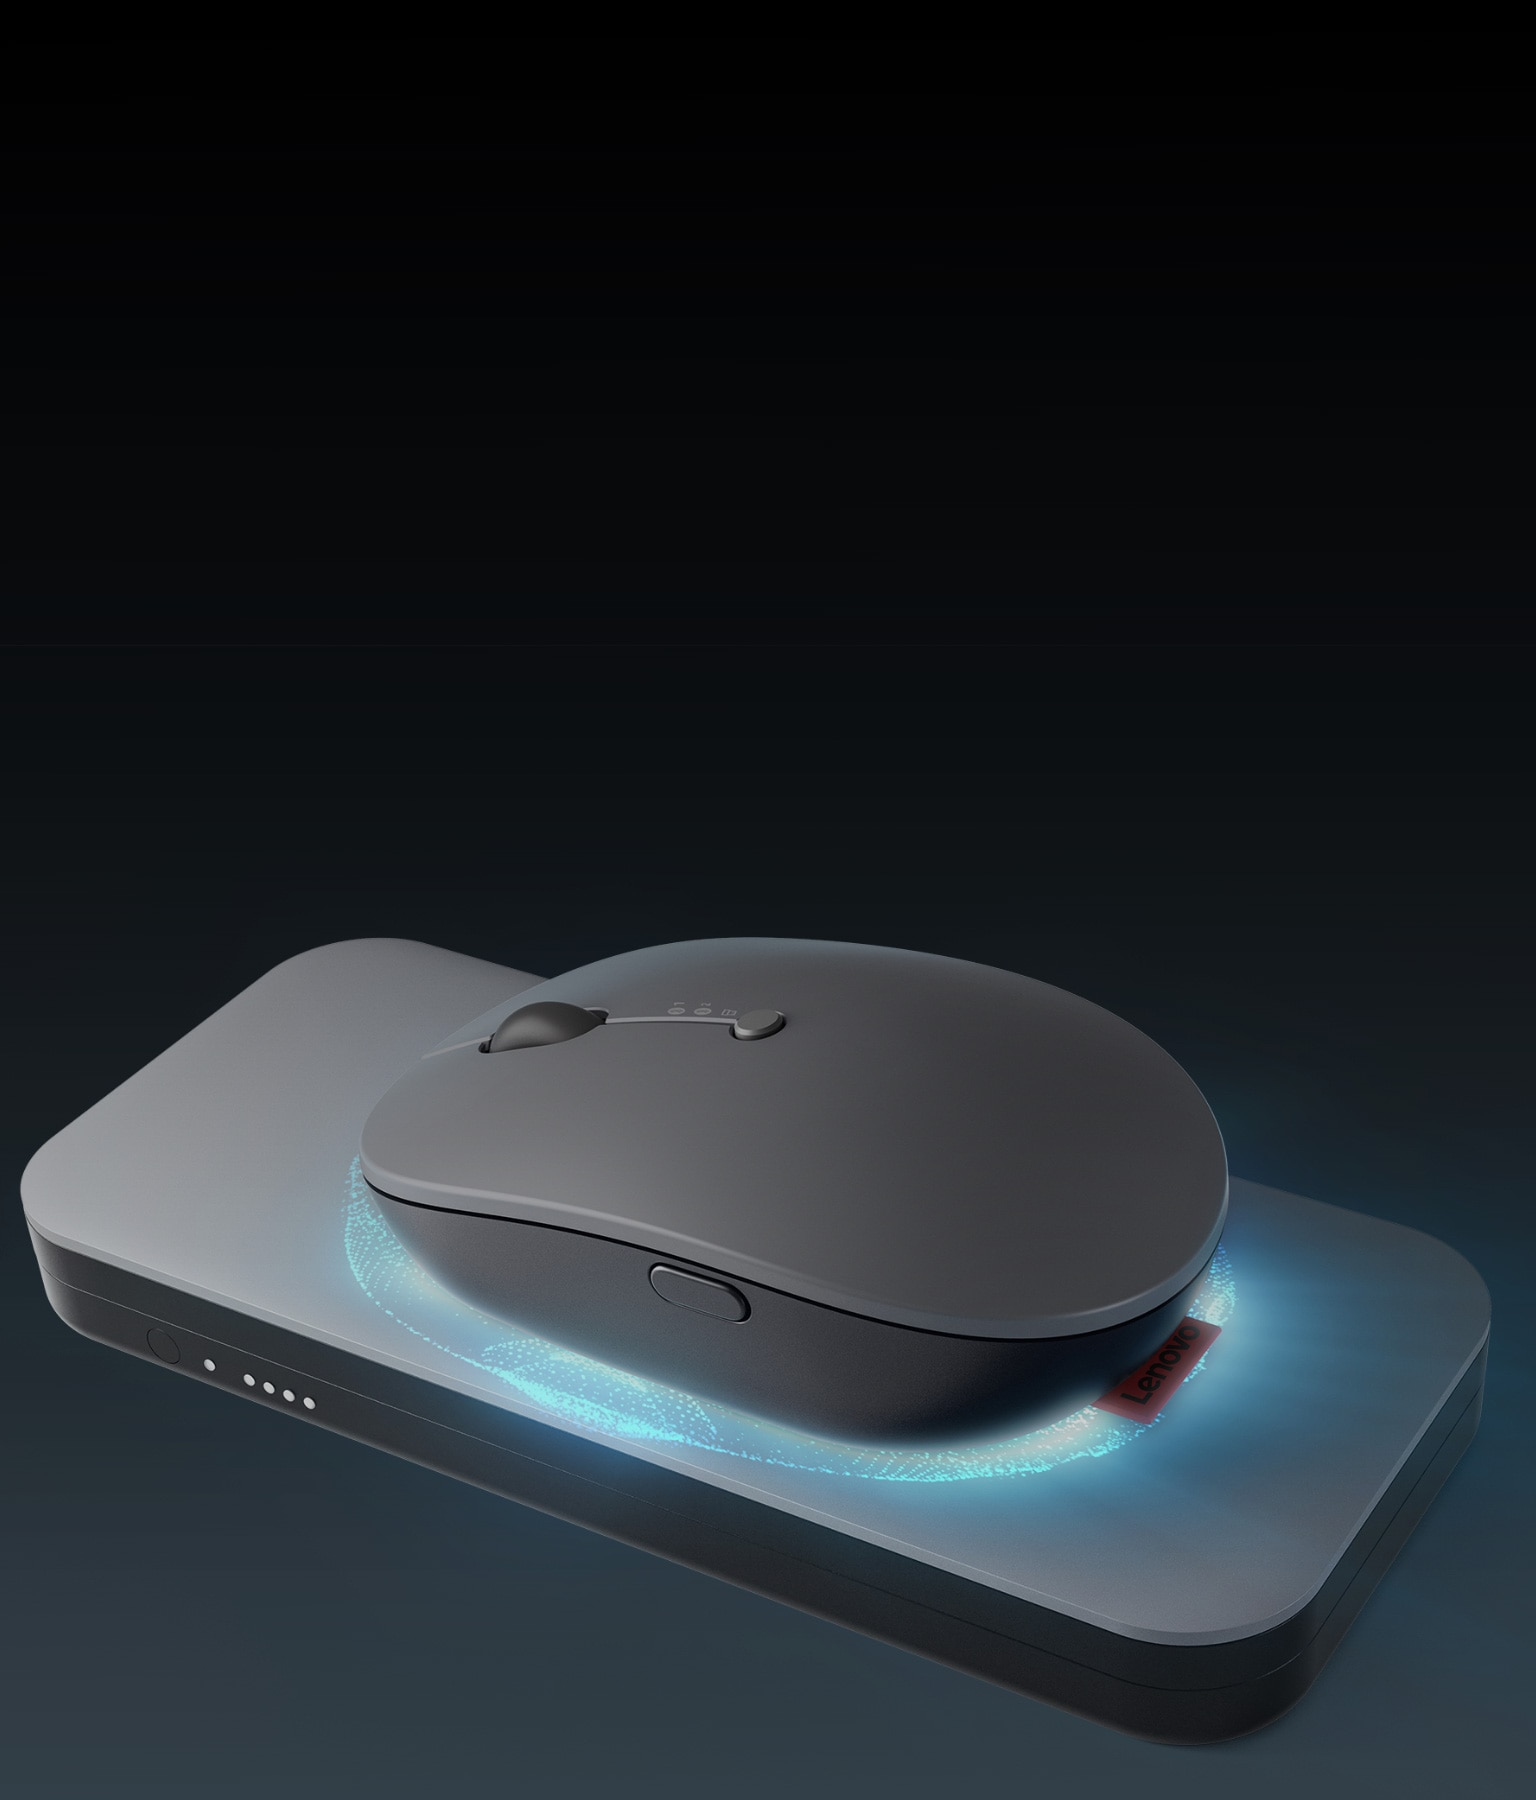 Lenovo Go Wireless Multi-Device Mouse charging on wireless charger